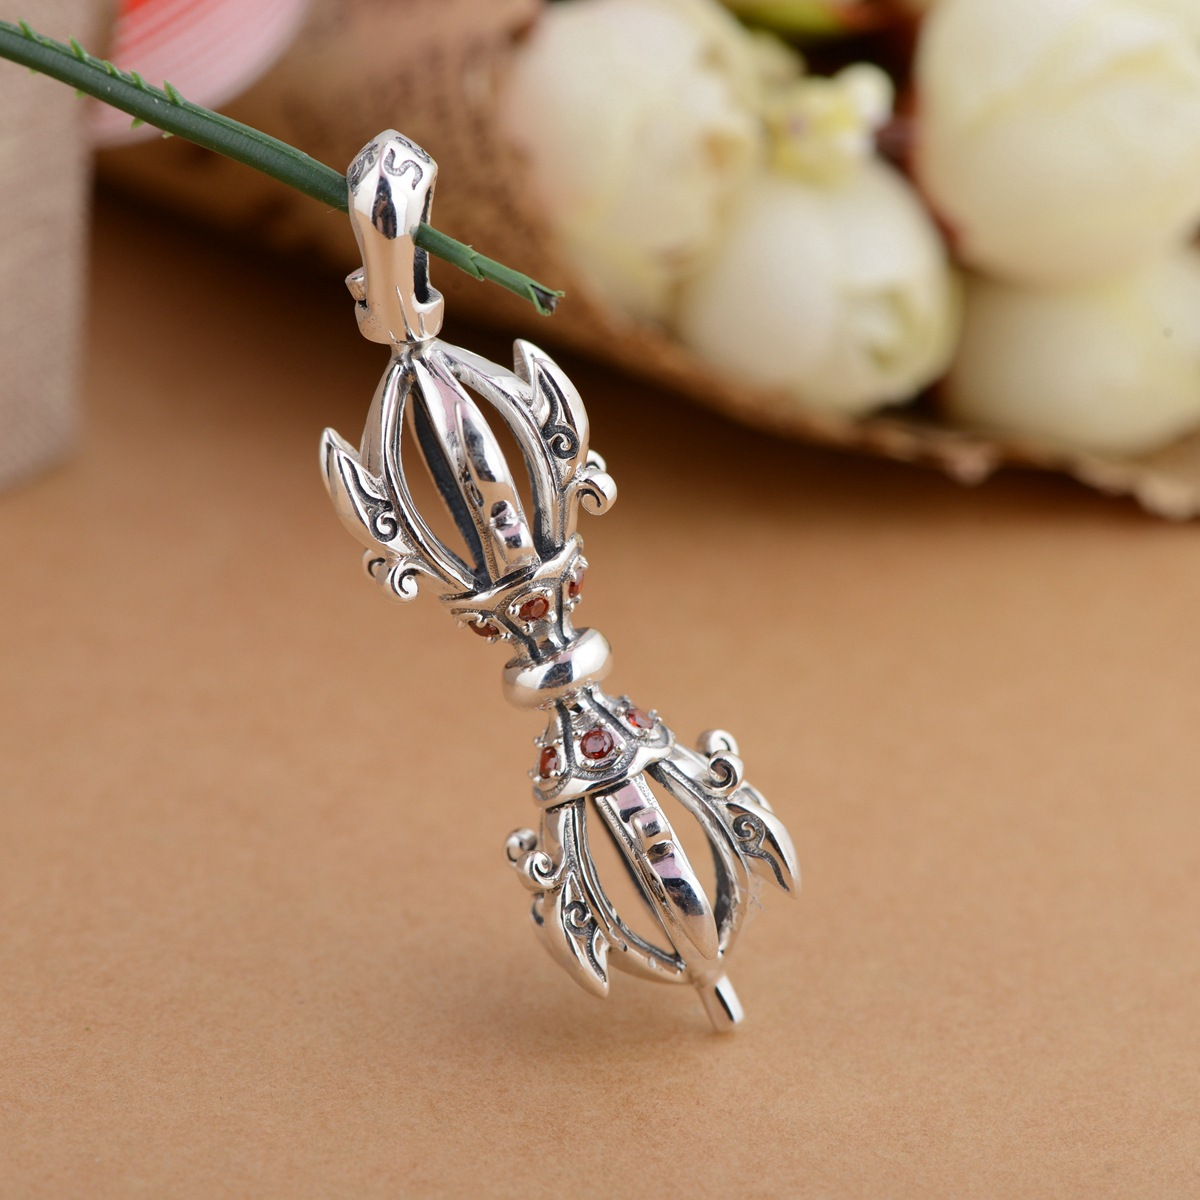 pendant S925 Sterling Silver Antique Crafts wholesale Vajra talisman to ward off evil spirits the peace one generation